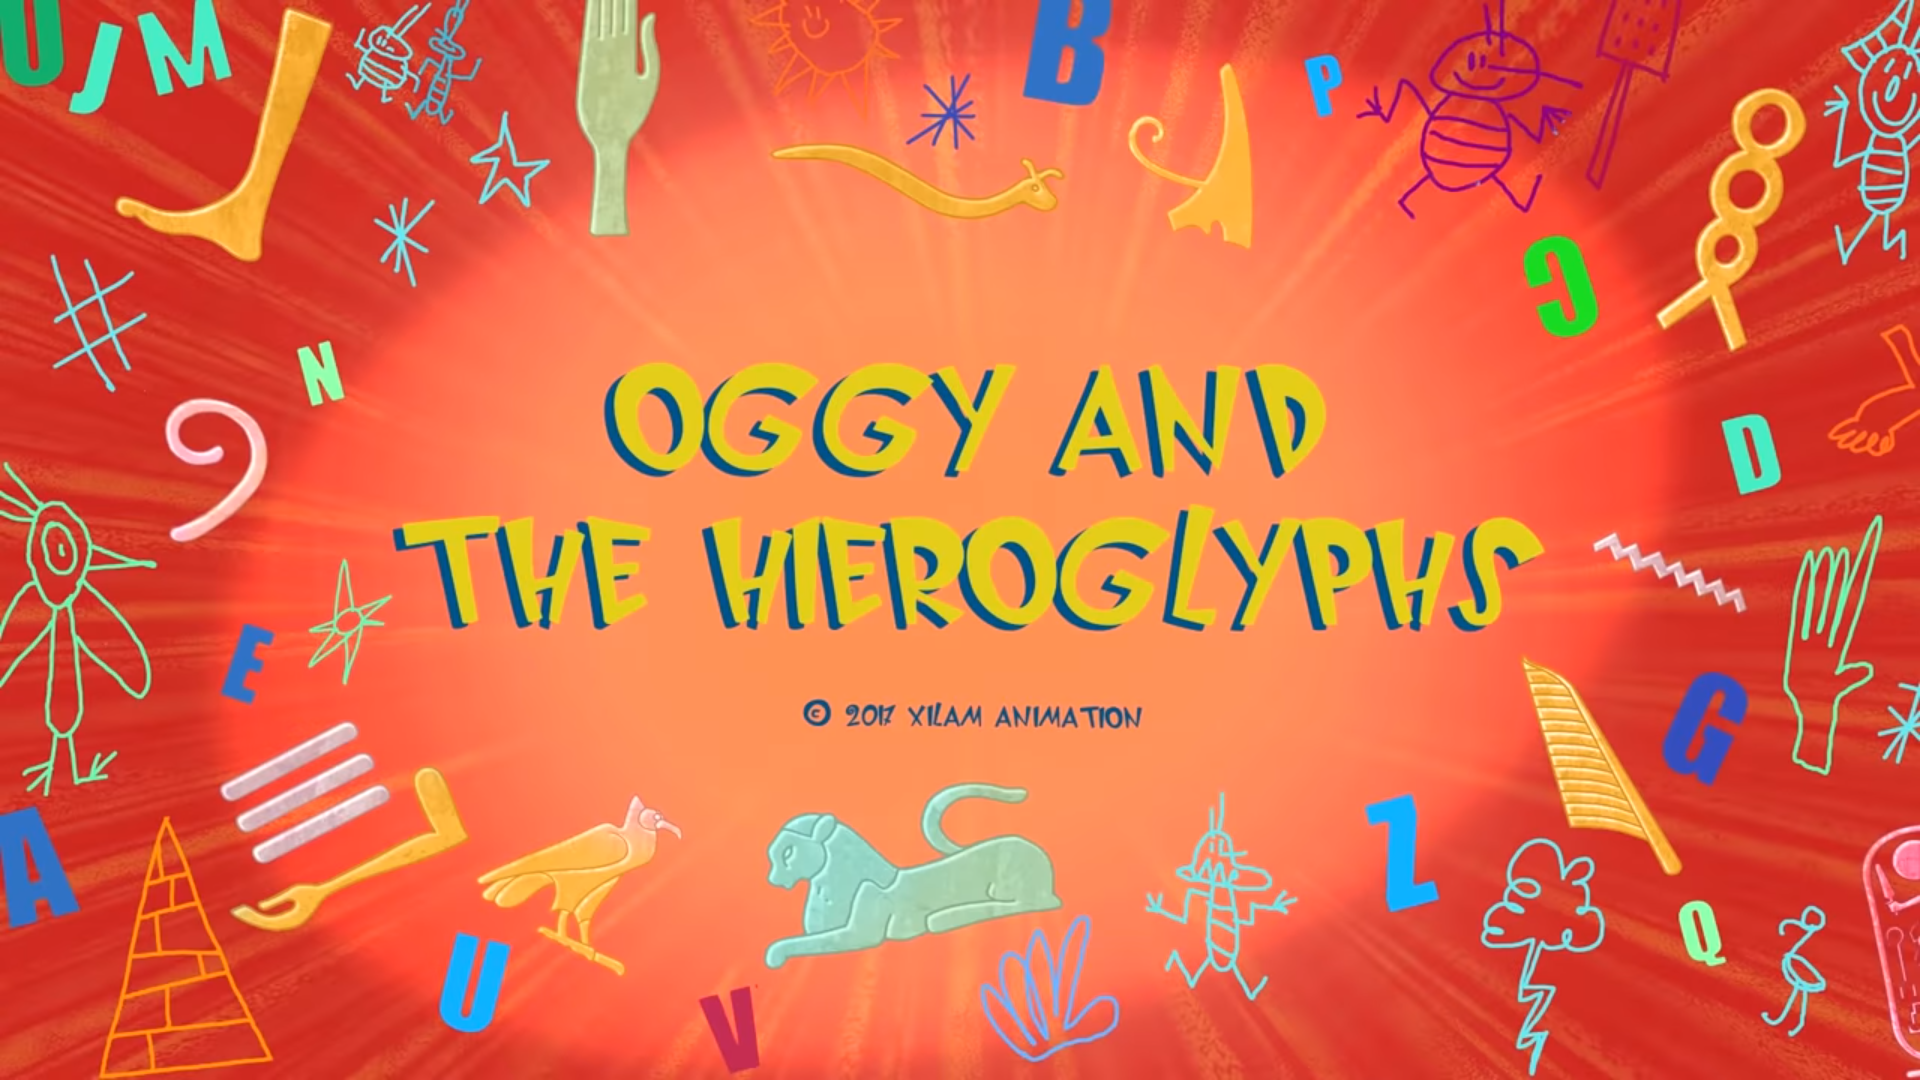 Oggy and the Hieroglyphs